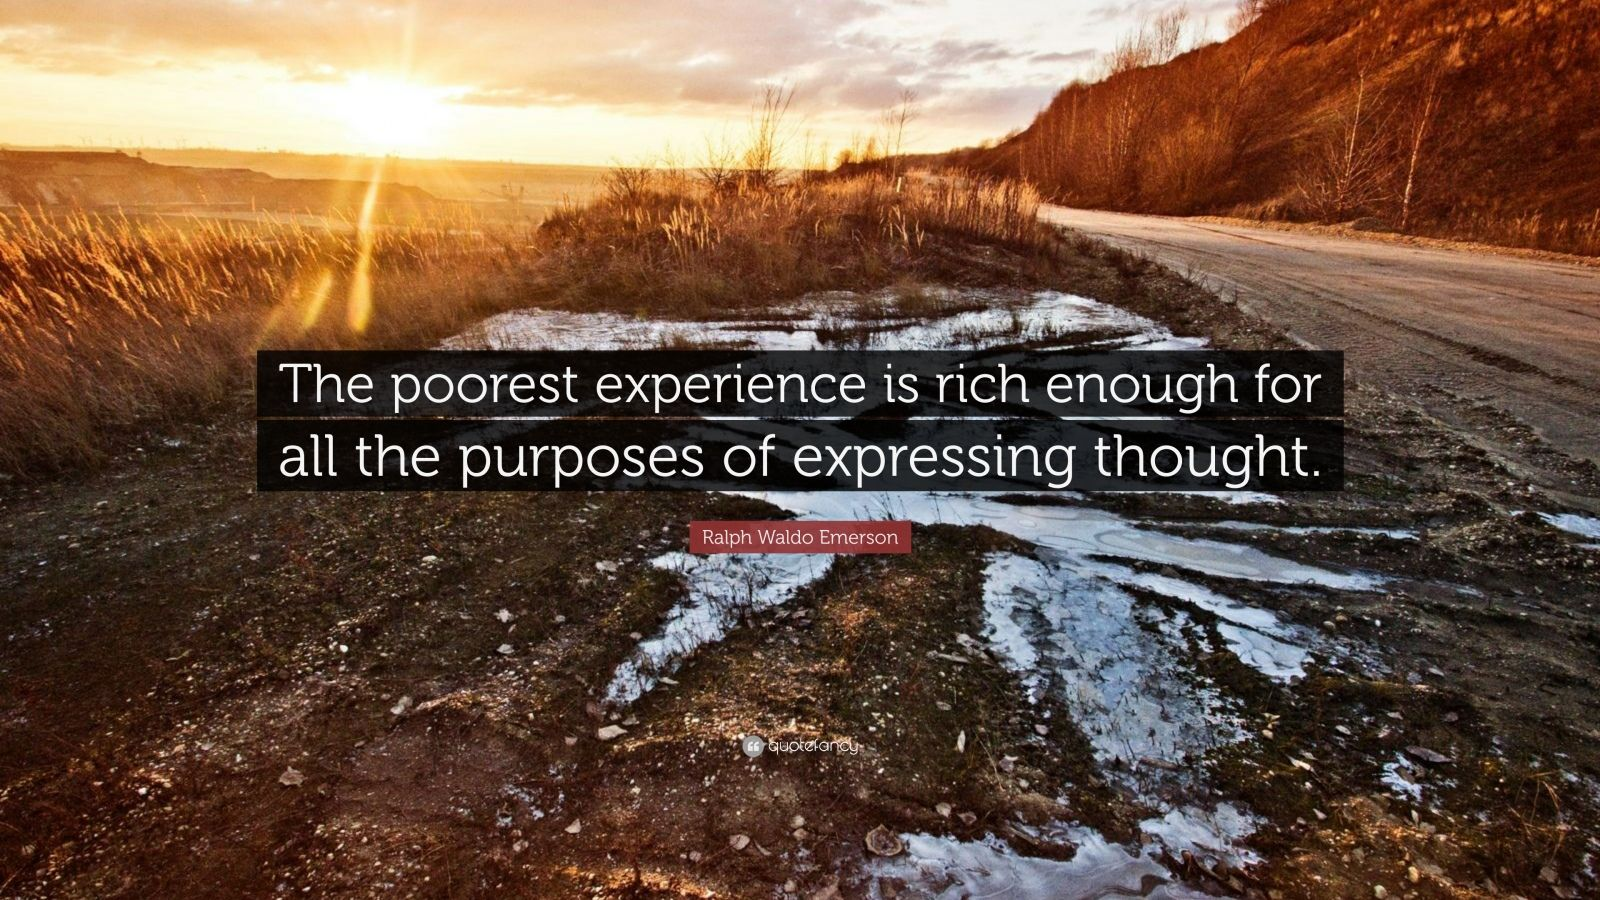 Experience by Ralph Waldo Emerson?